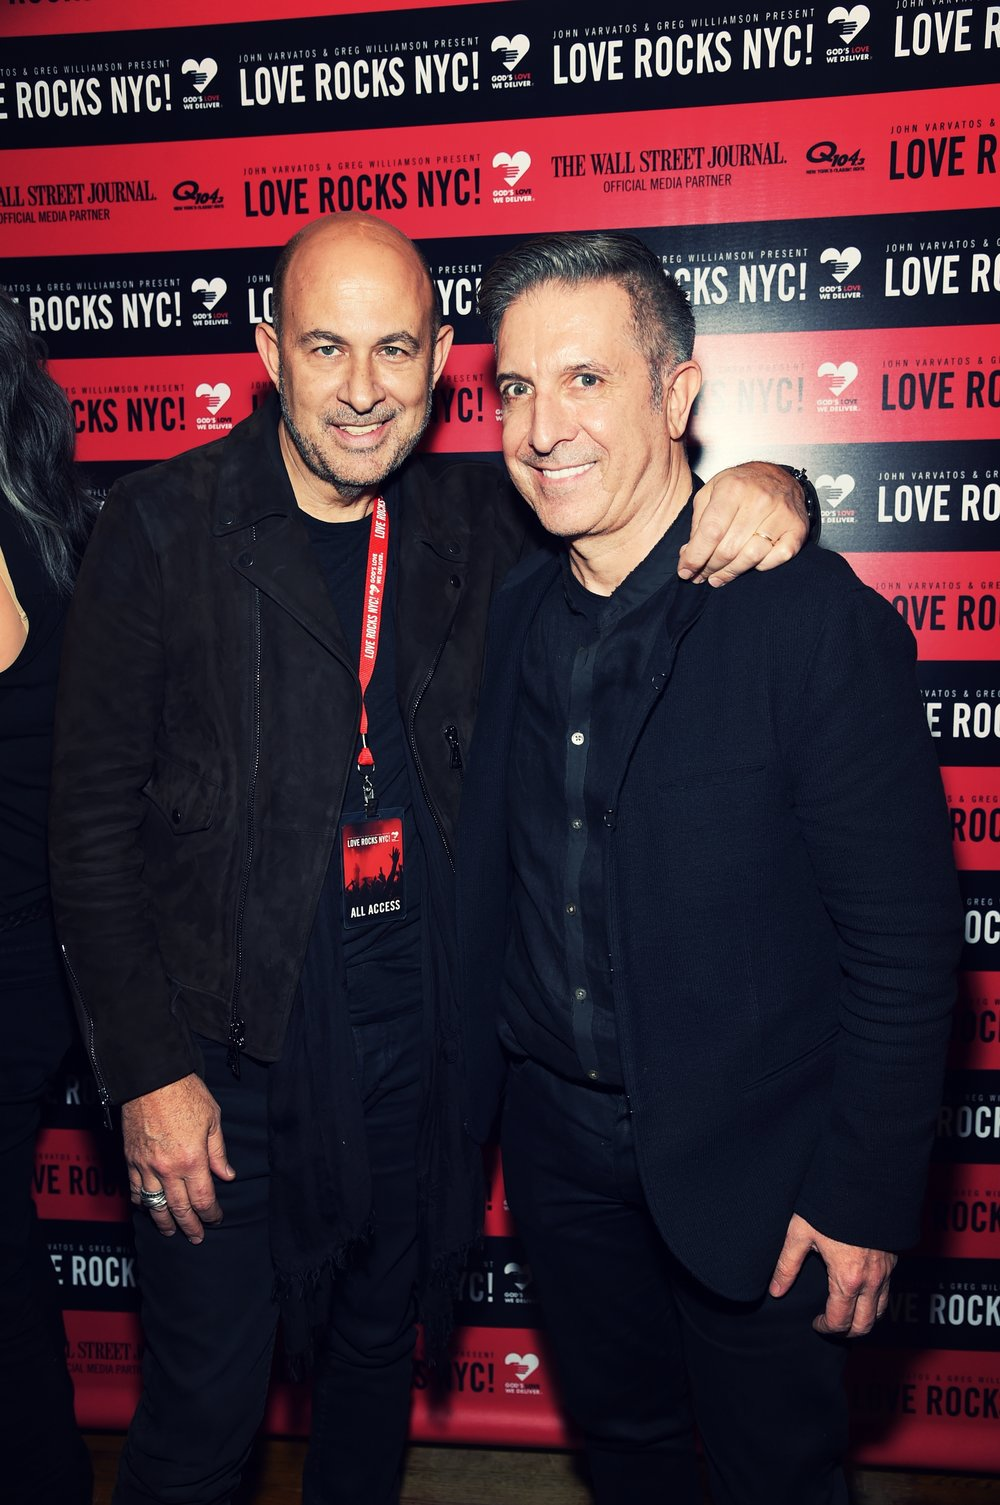 Copy of John Varvatos & Mark Brashear